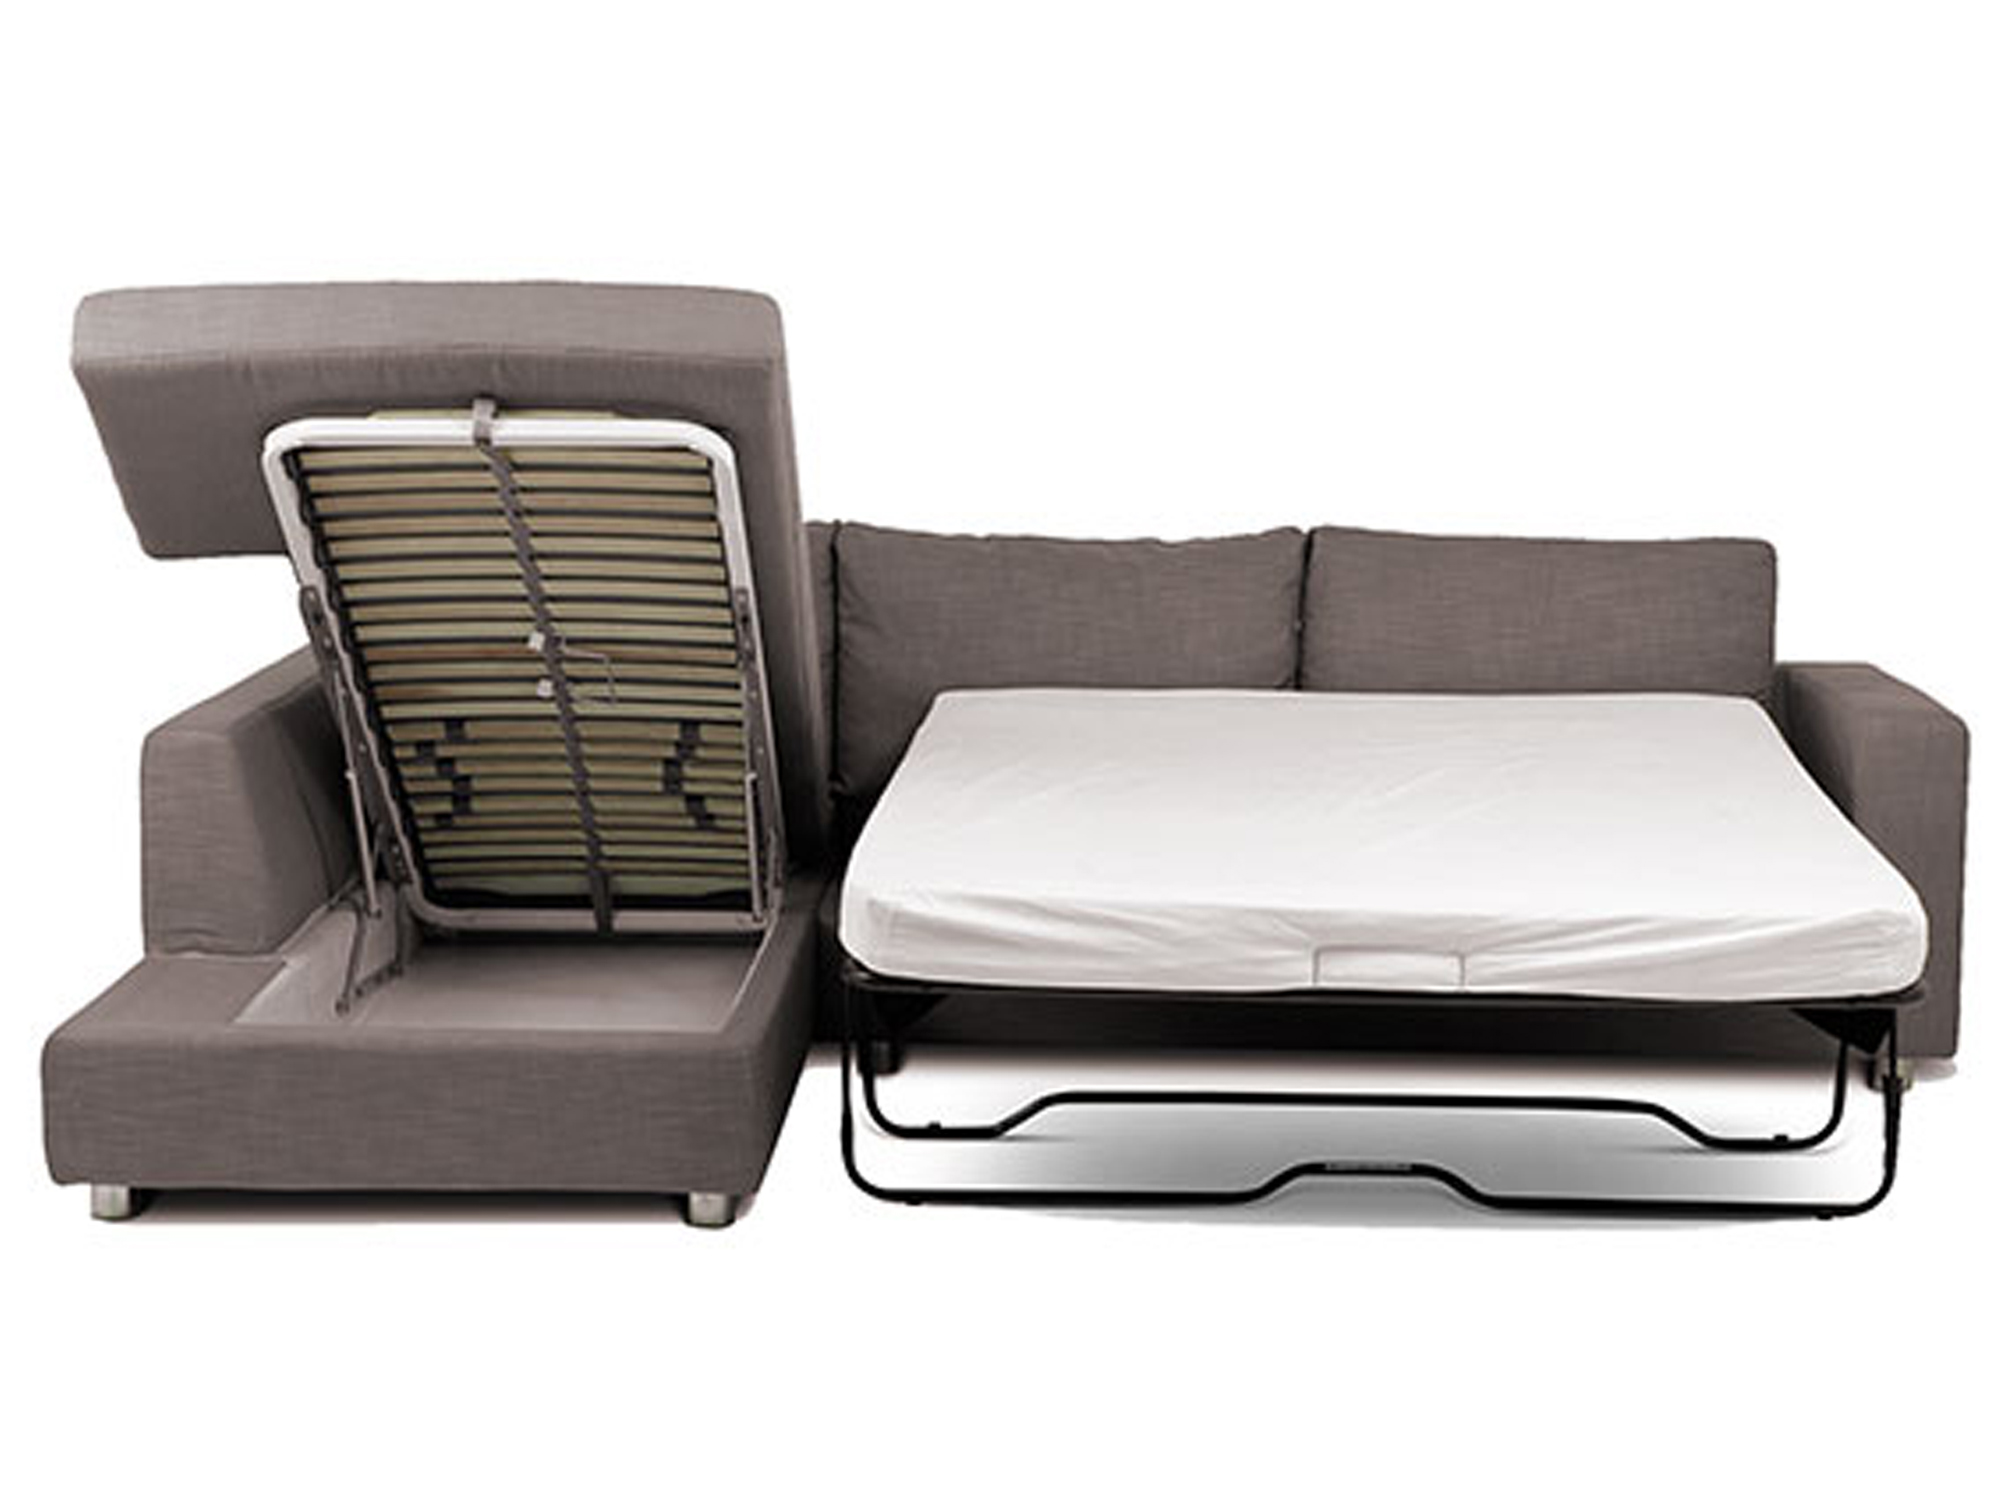 corner sofa bed roma grey black leather with metal legs a for your home  goodworksfurniture